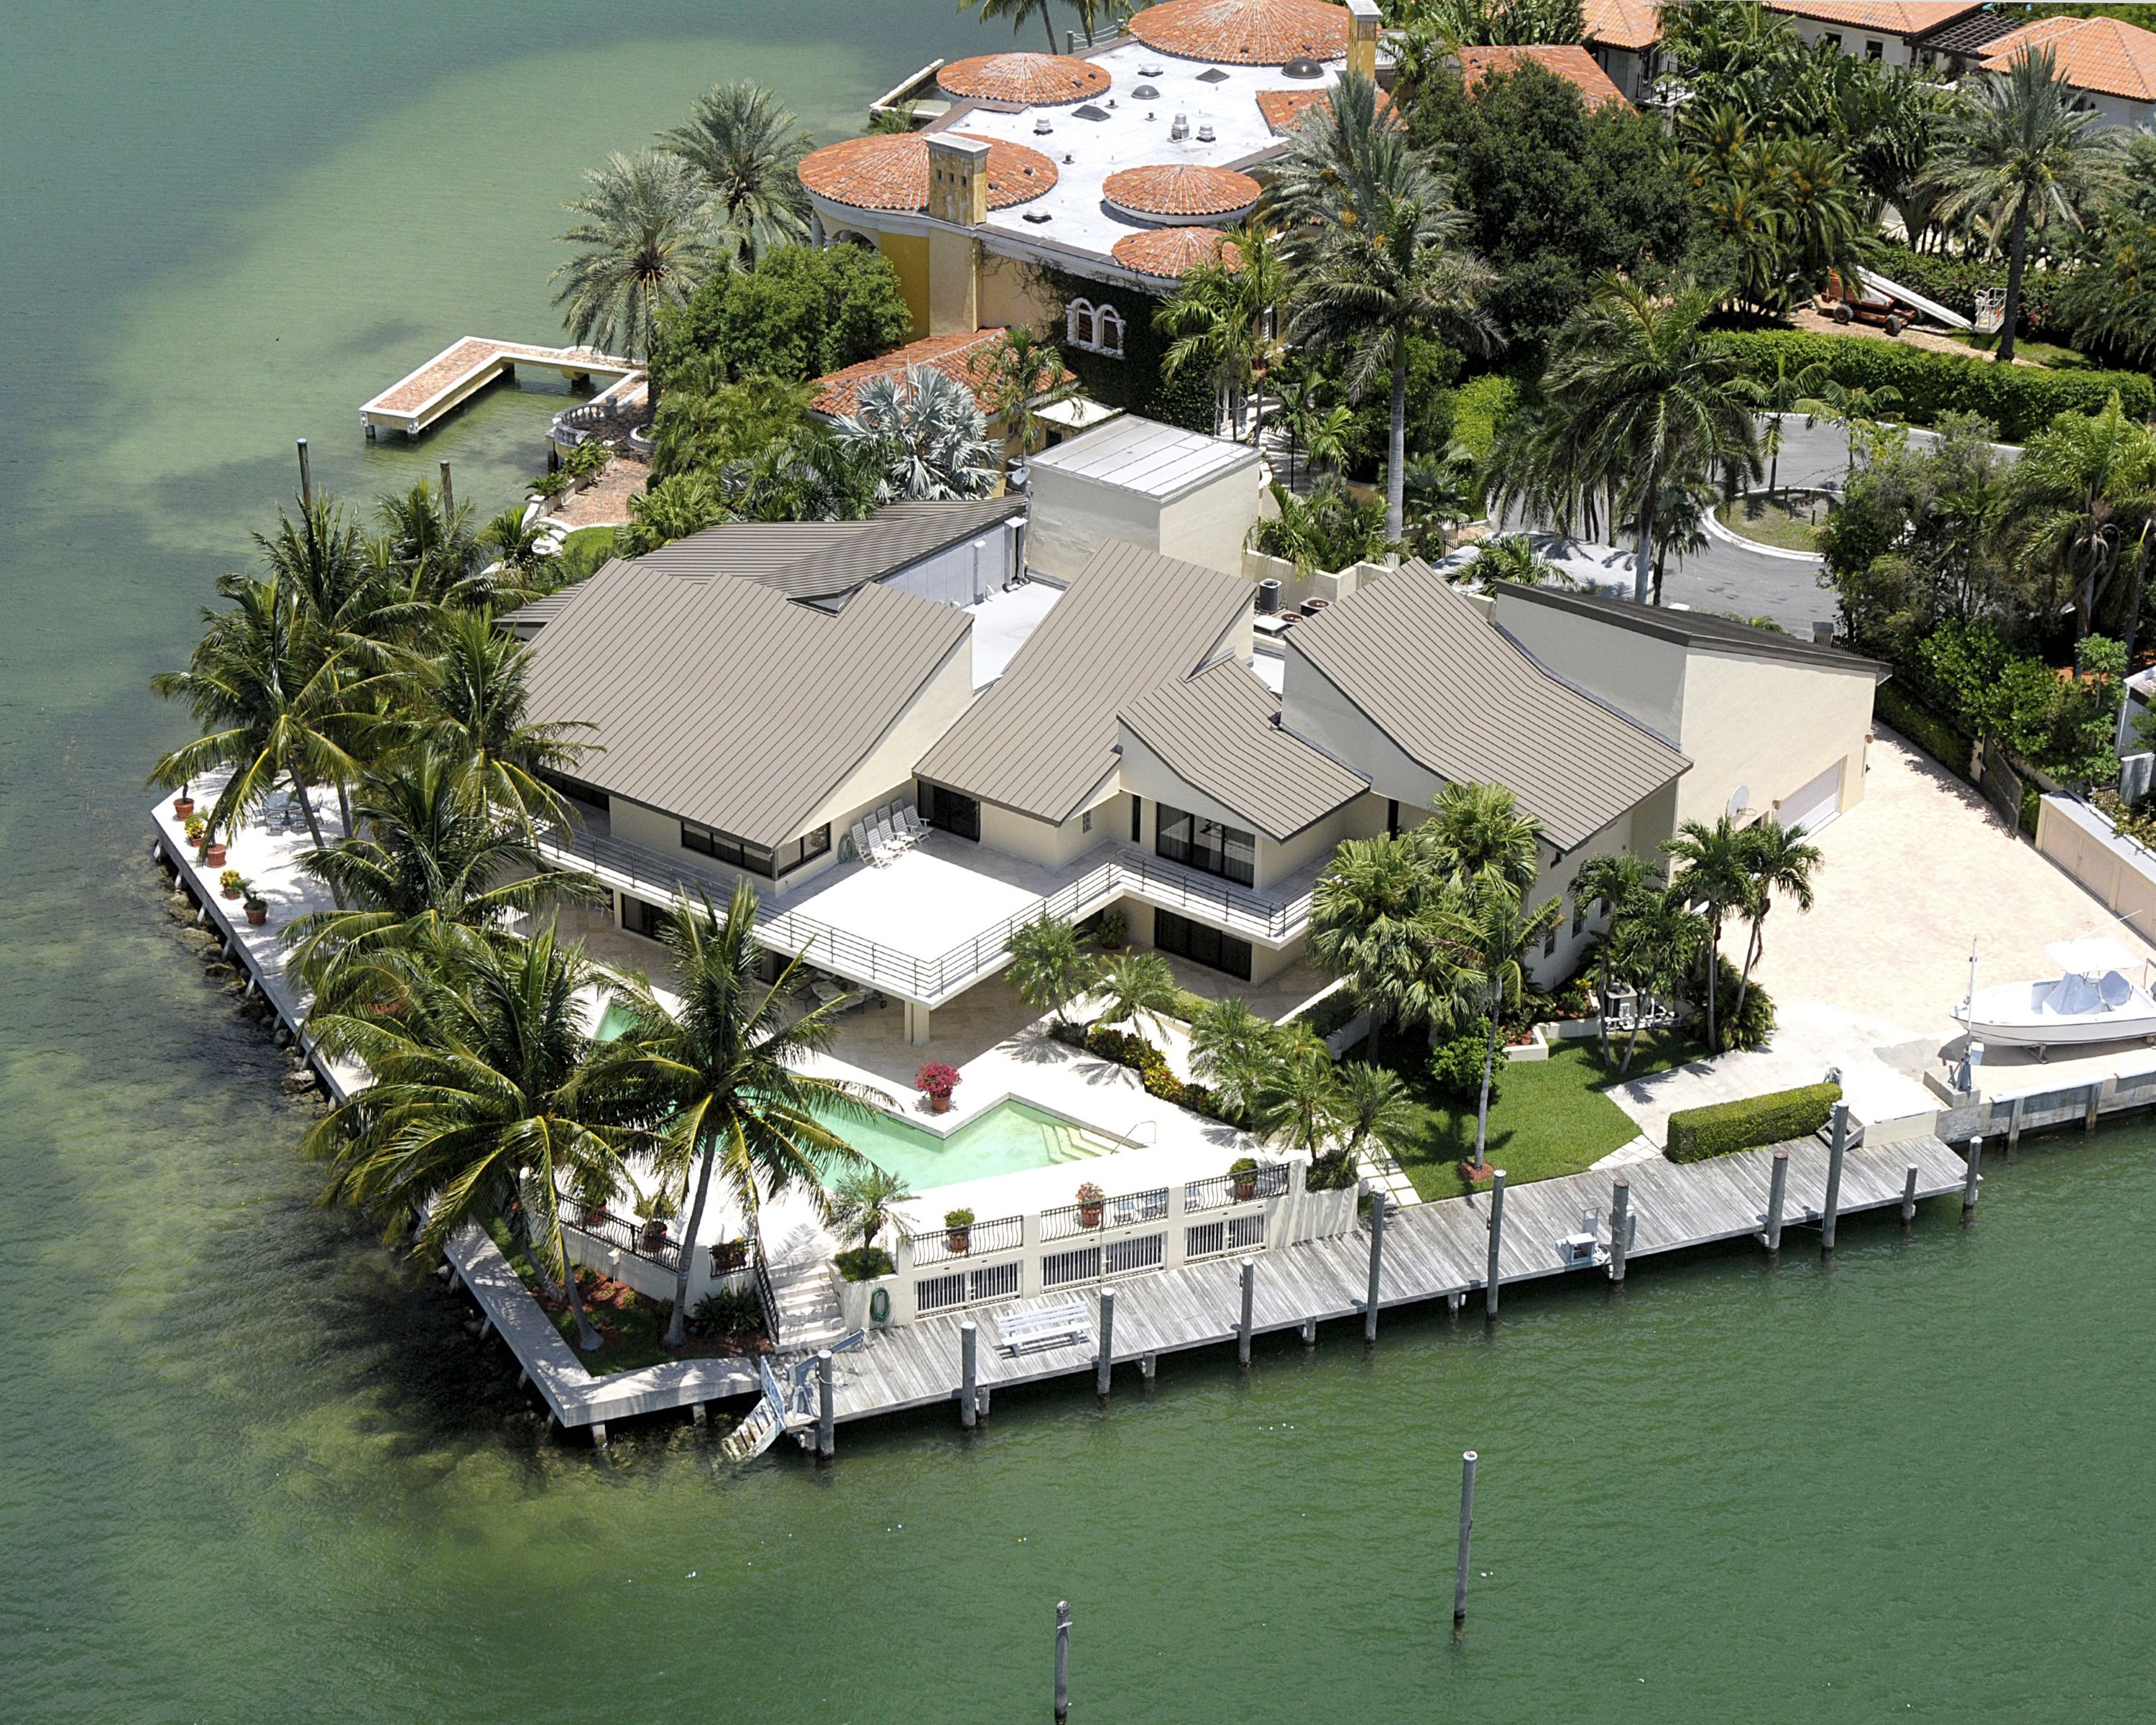 Amazing Exotic Islands For Sale With Mansions | Key Biscayne Luxury Homes, Key  Biscayne Waterfront Mansions Design Inspirations